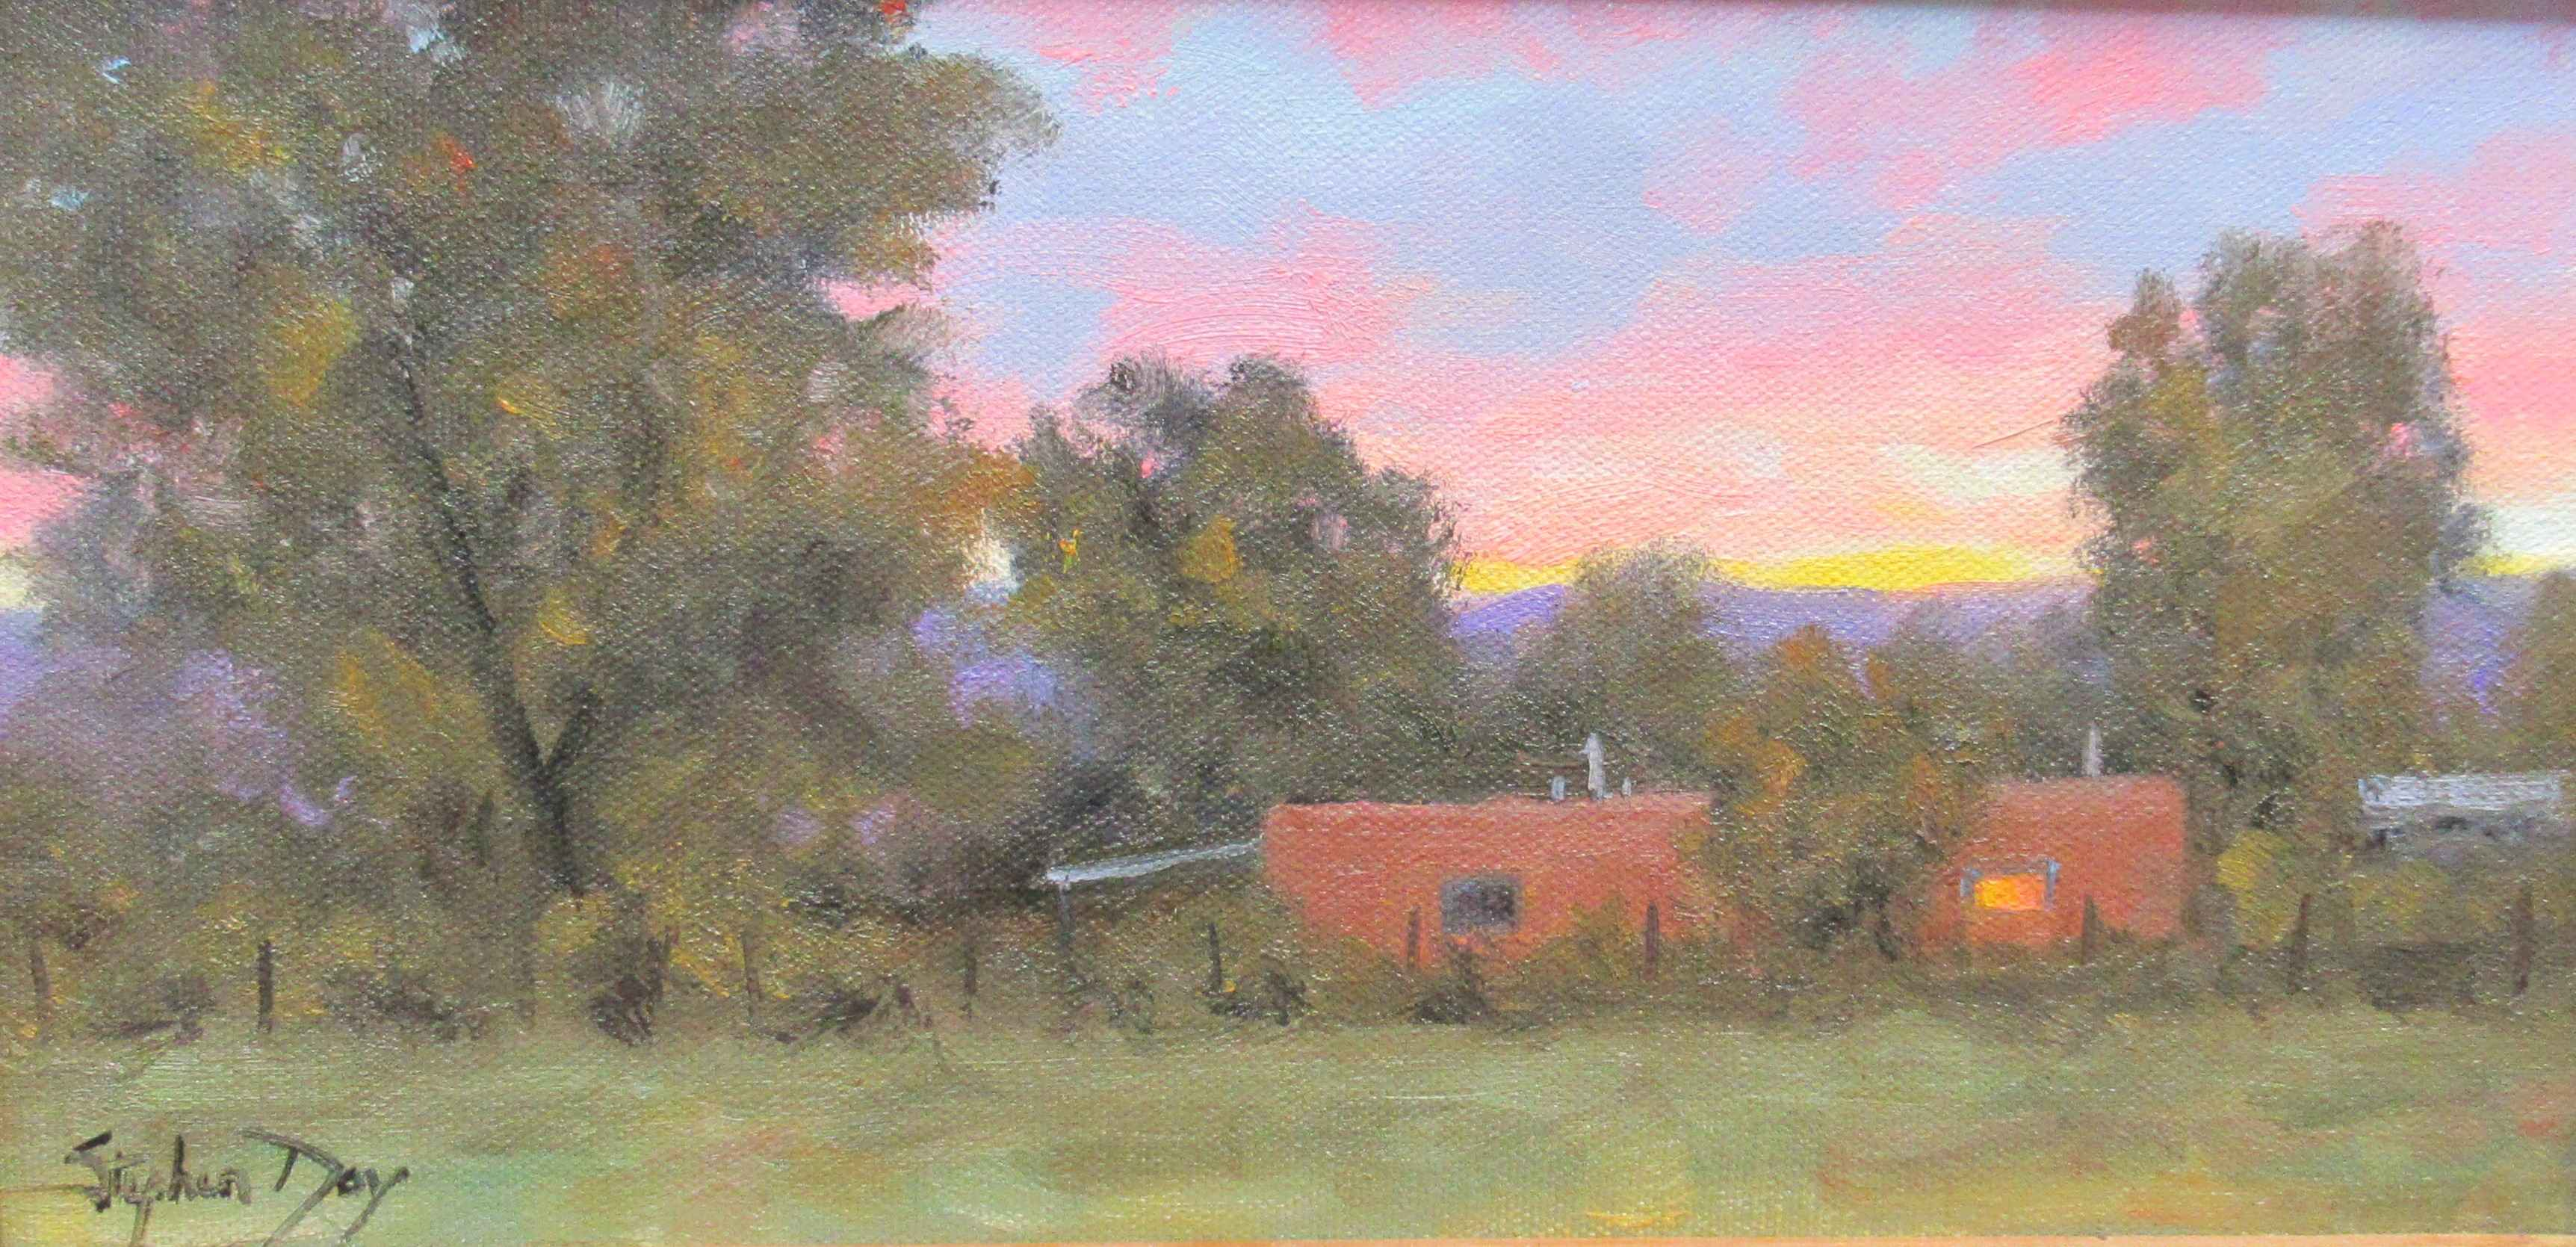 In the Evening - Taos by  Stephen Day - Masterpiece Online